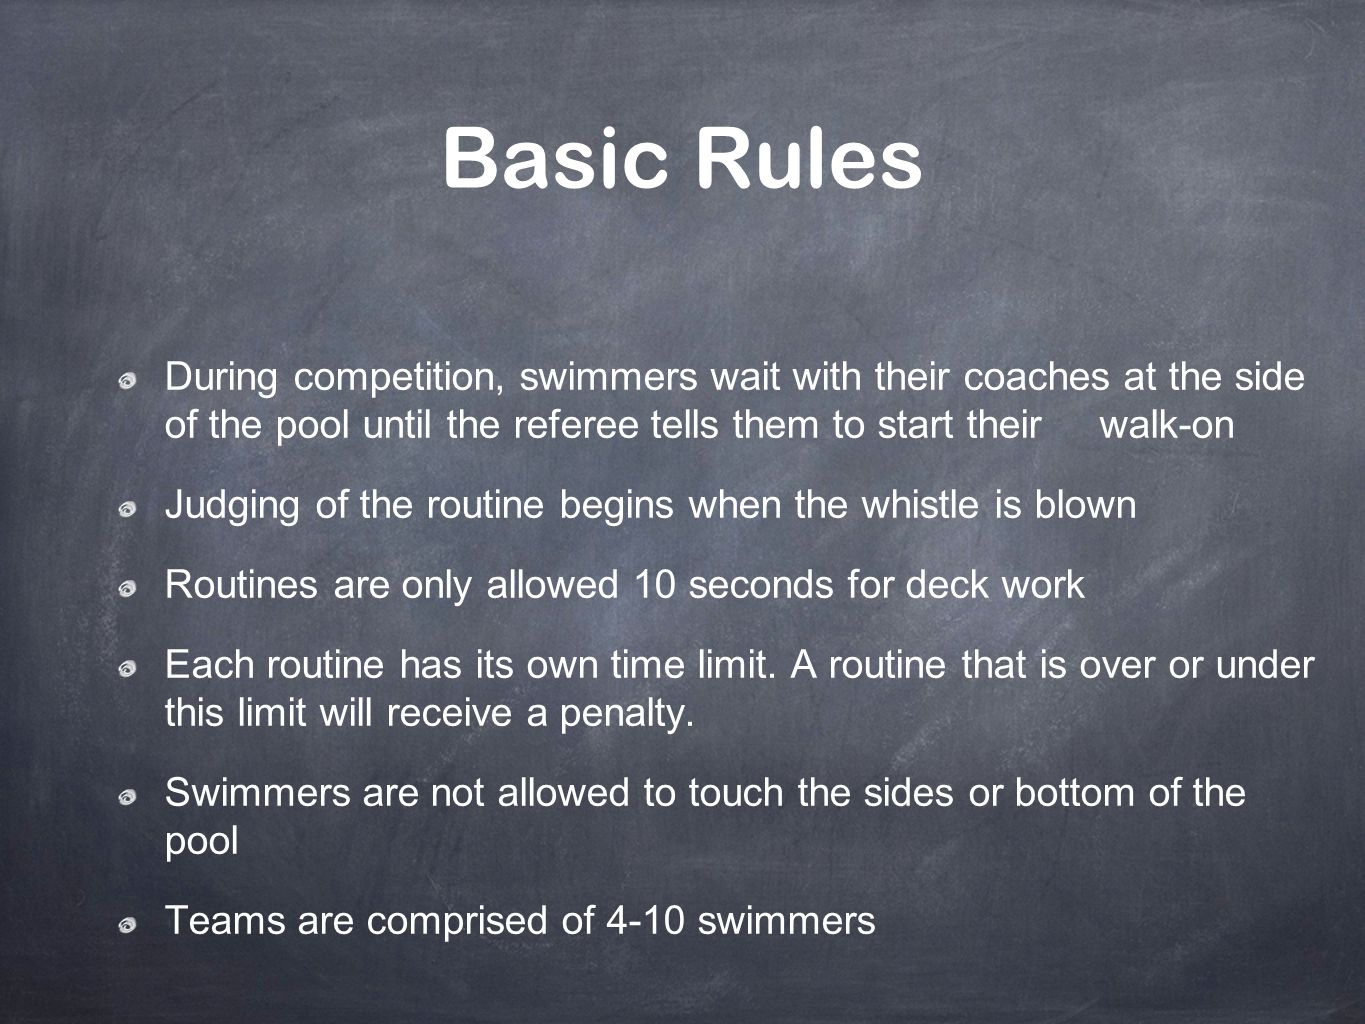 Basic Rules During competition, swimmers wait with their coaches at the side of the pool until the referee tells them to start their walk-on.